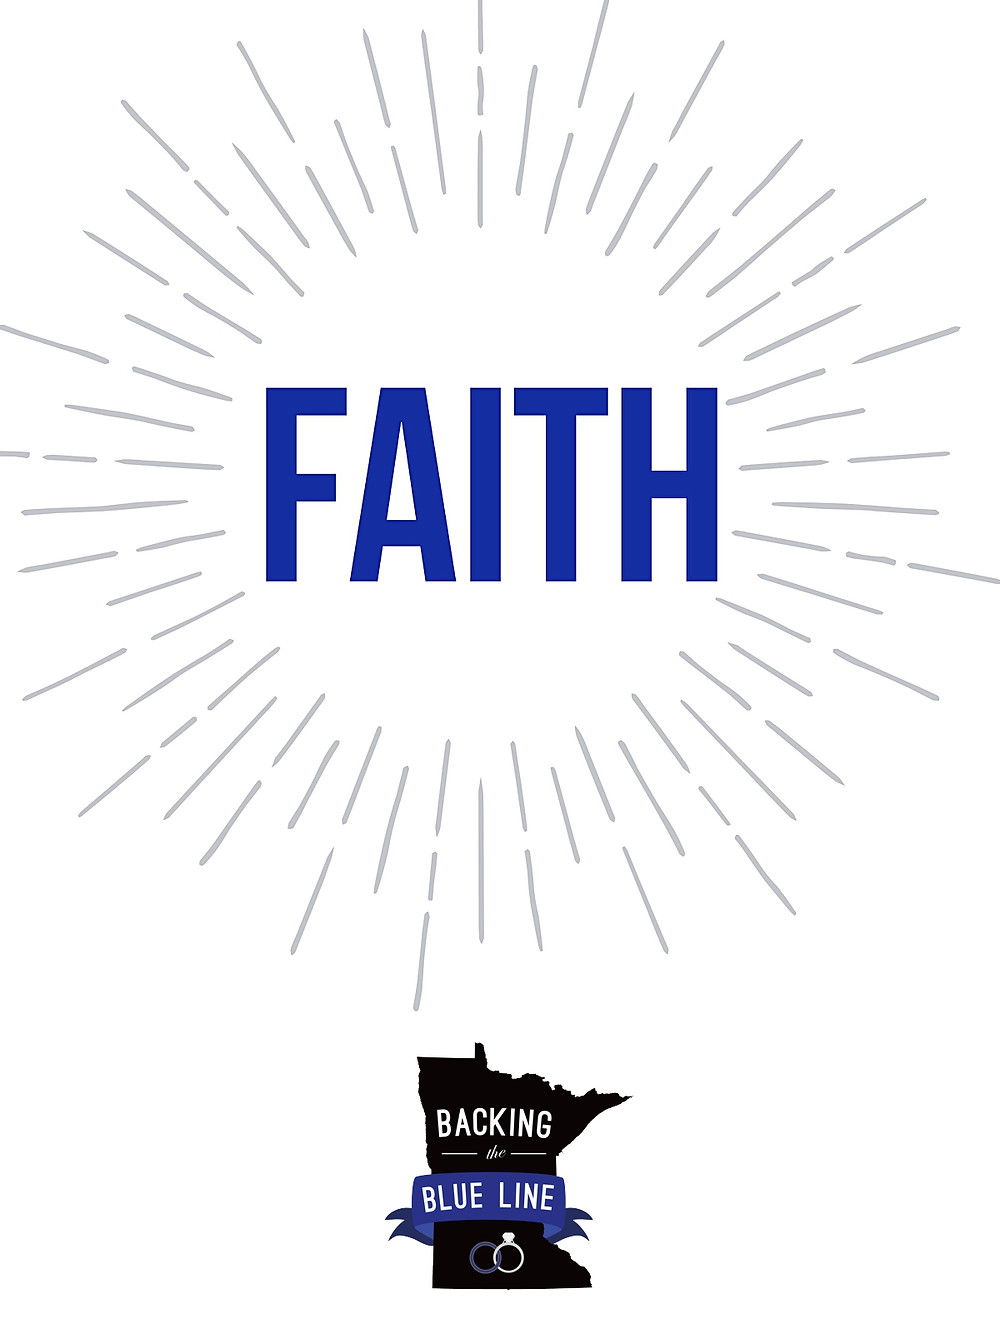 Graphic with the word faith in royal blue and the backing the blue line logo.